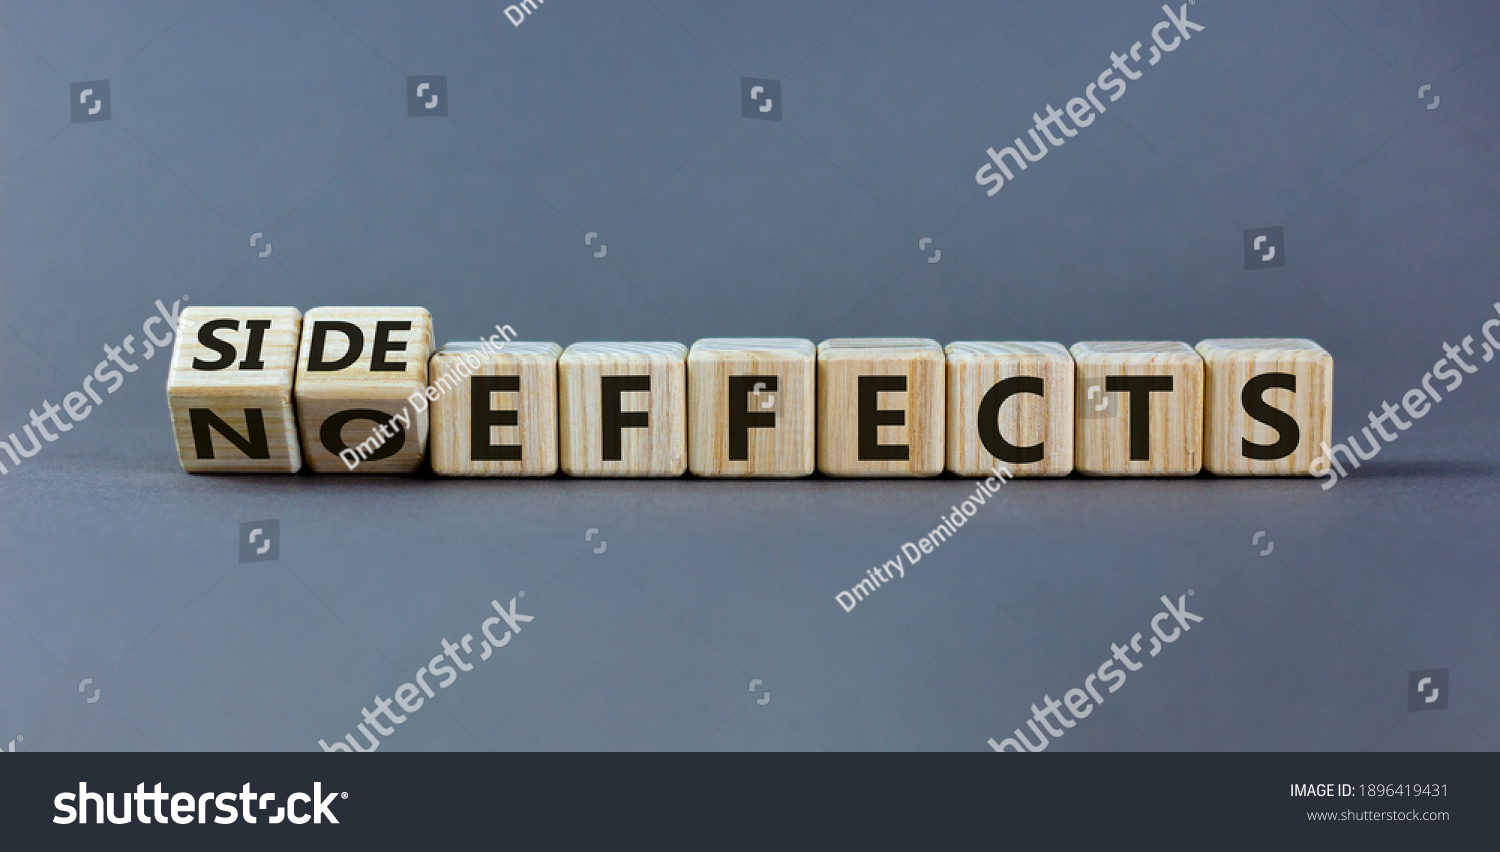 Side or no effects symbol. Turned wooden cubes and changed words 'no effects' to 'side effects'. Beautiful grey background, copy space. Medical, covid-19 pandemic corona side effects concept. #1896419431